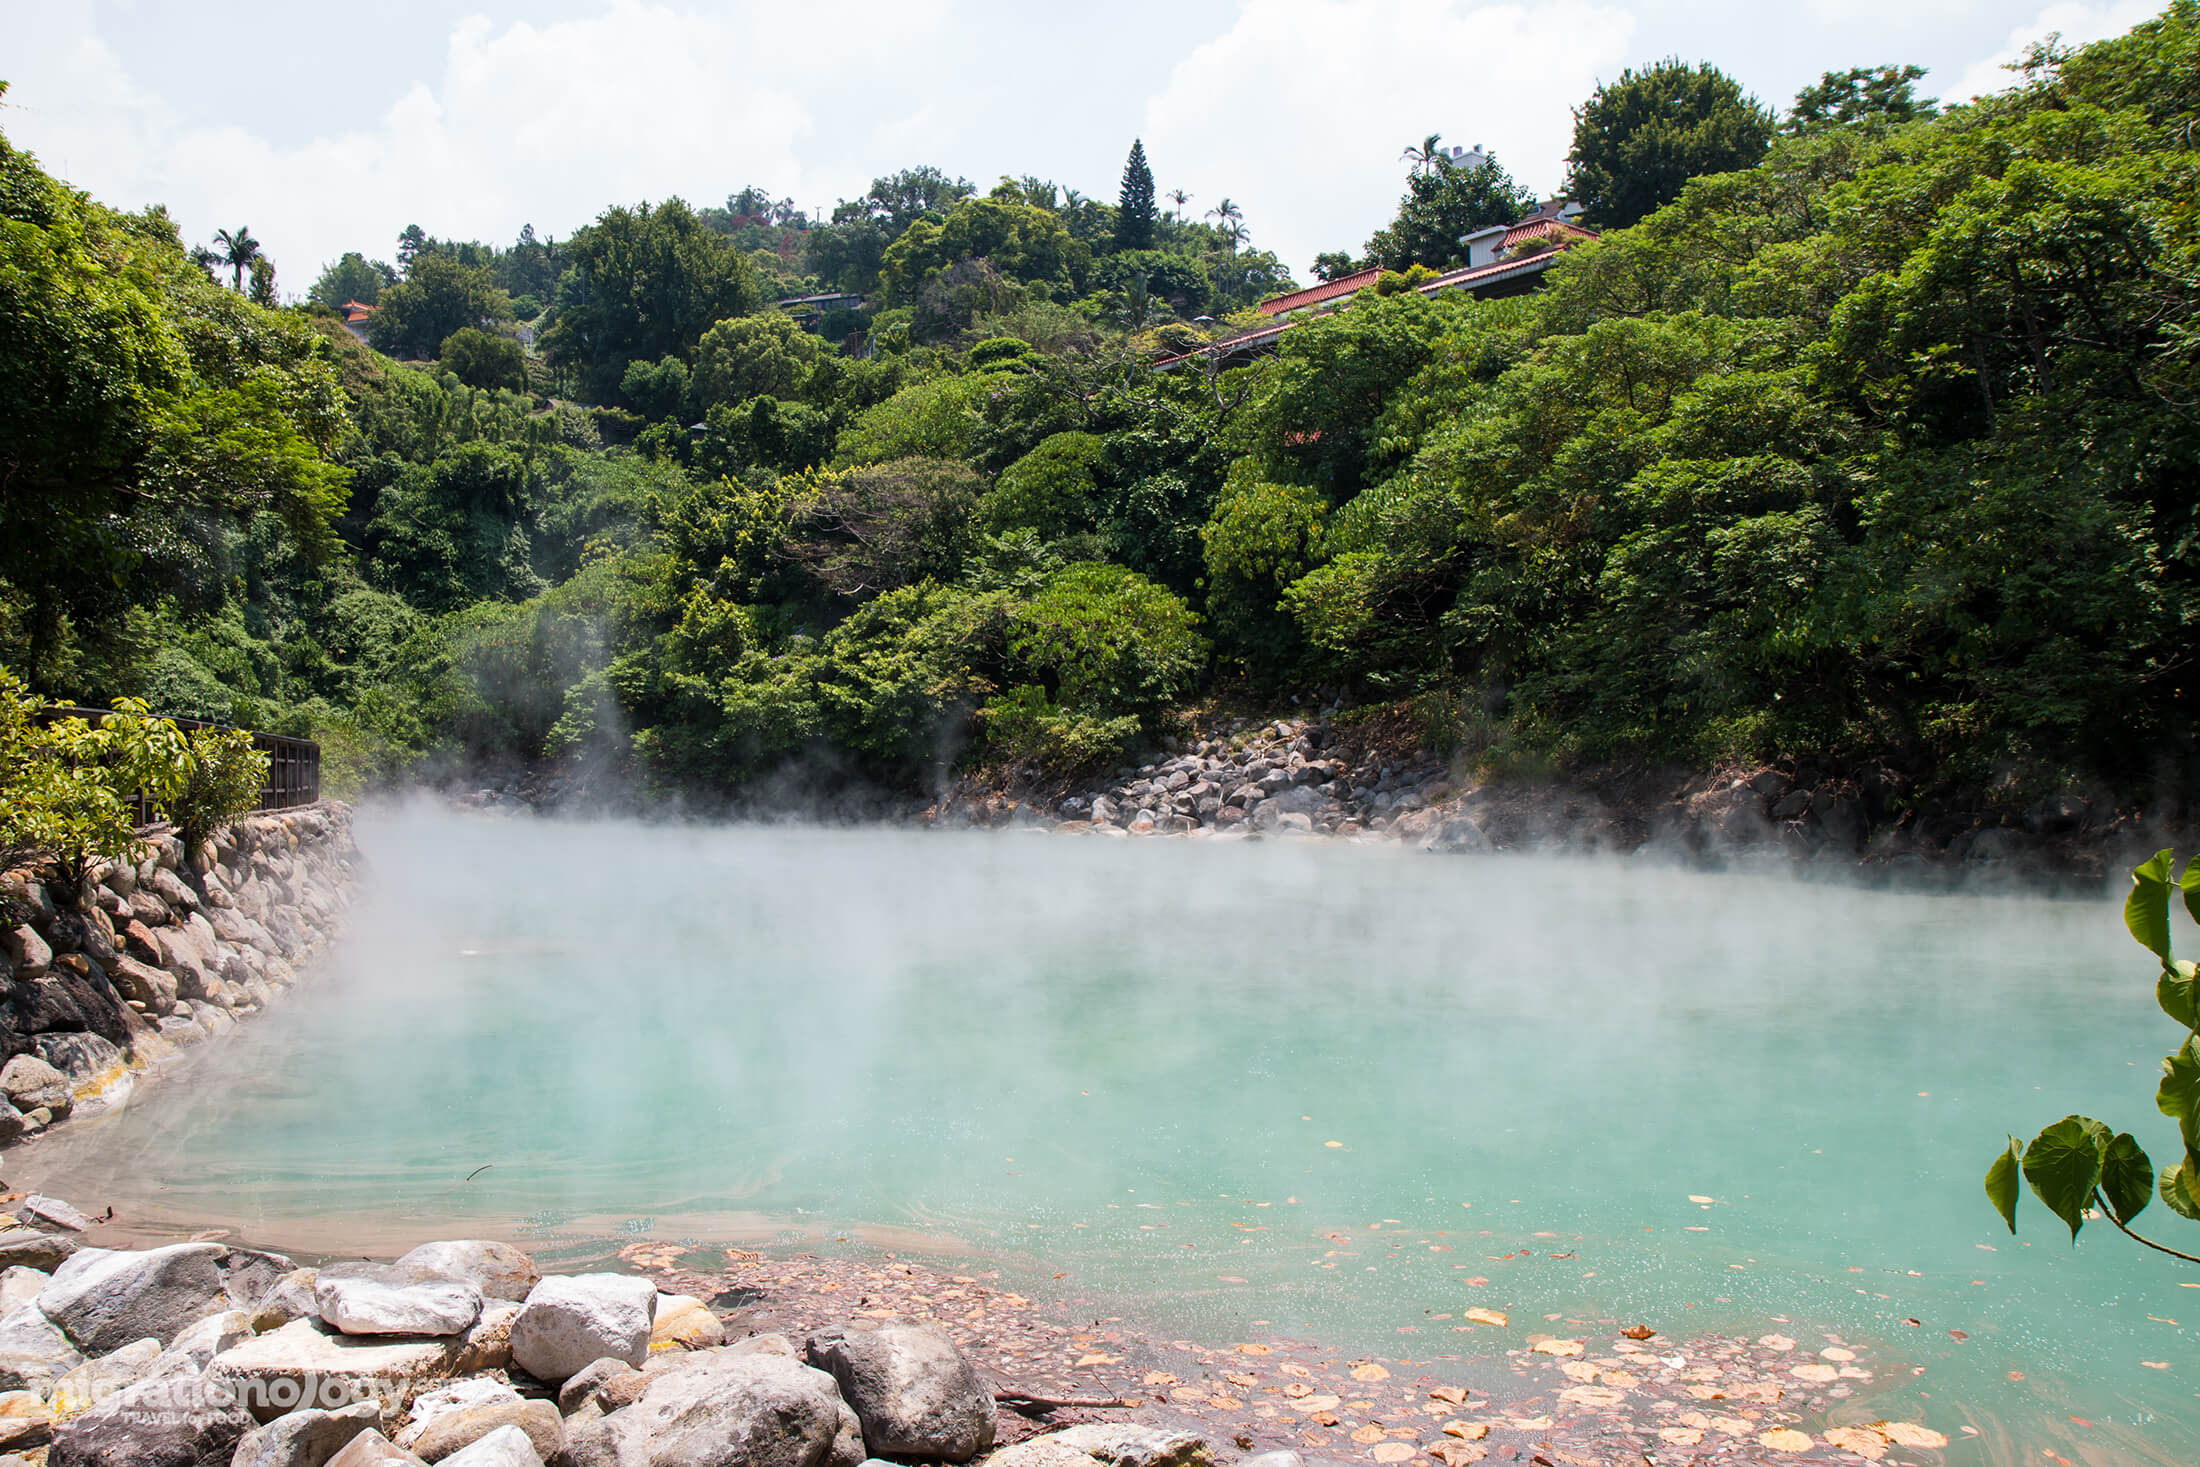 Day Trip To Beitou Hot Springs And An Unexpected